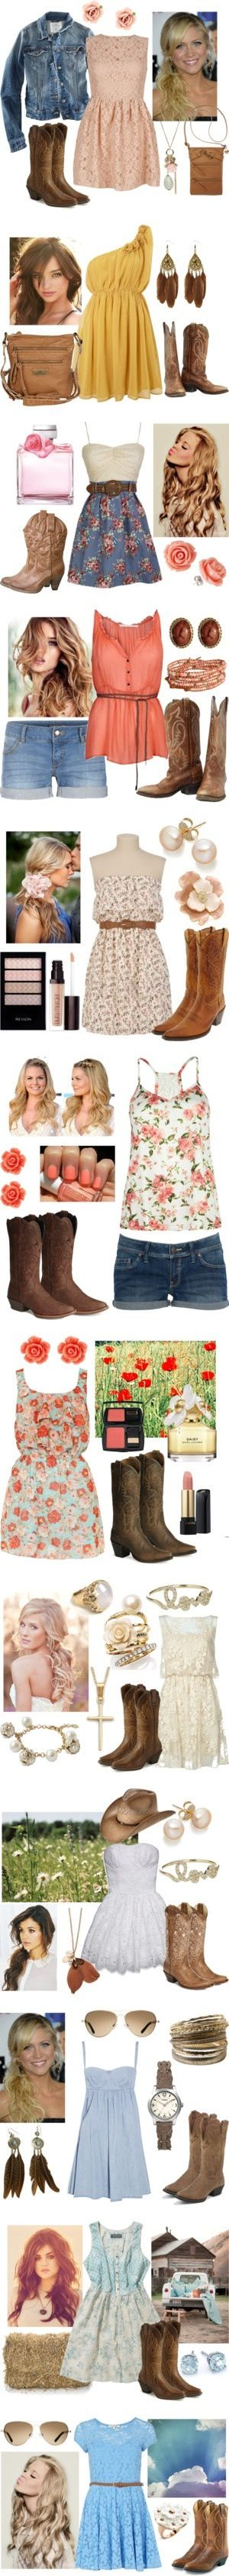 Cute cowgirl boot outfits! Love them all!!